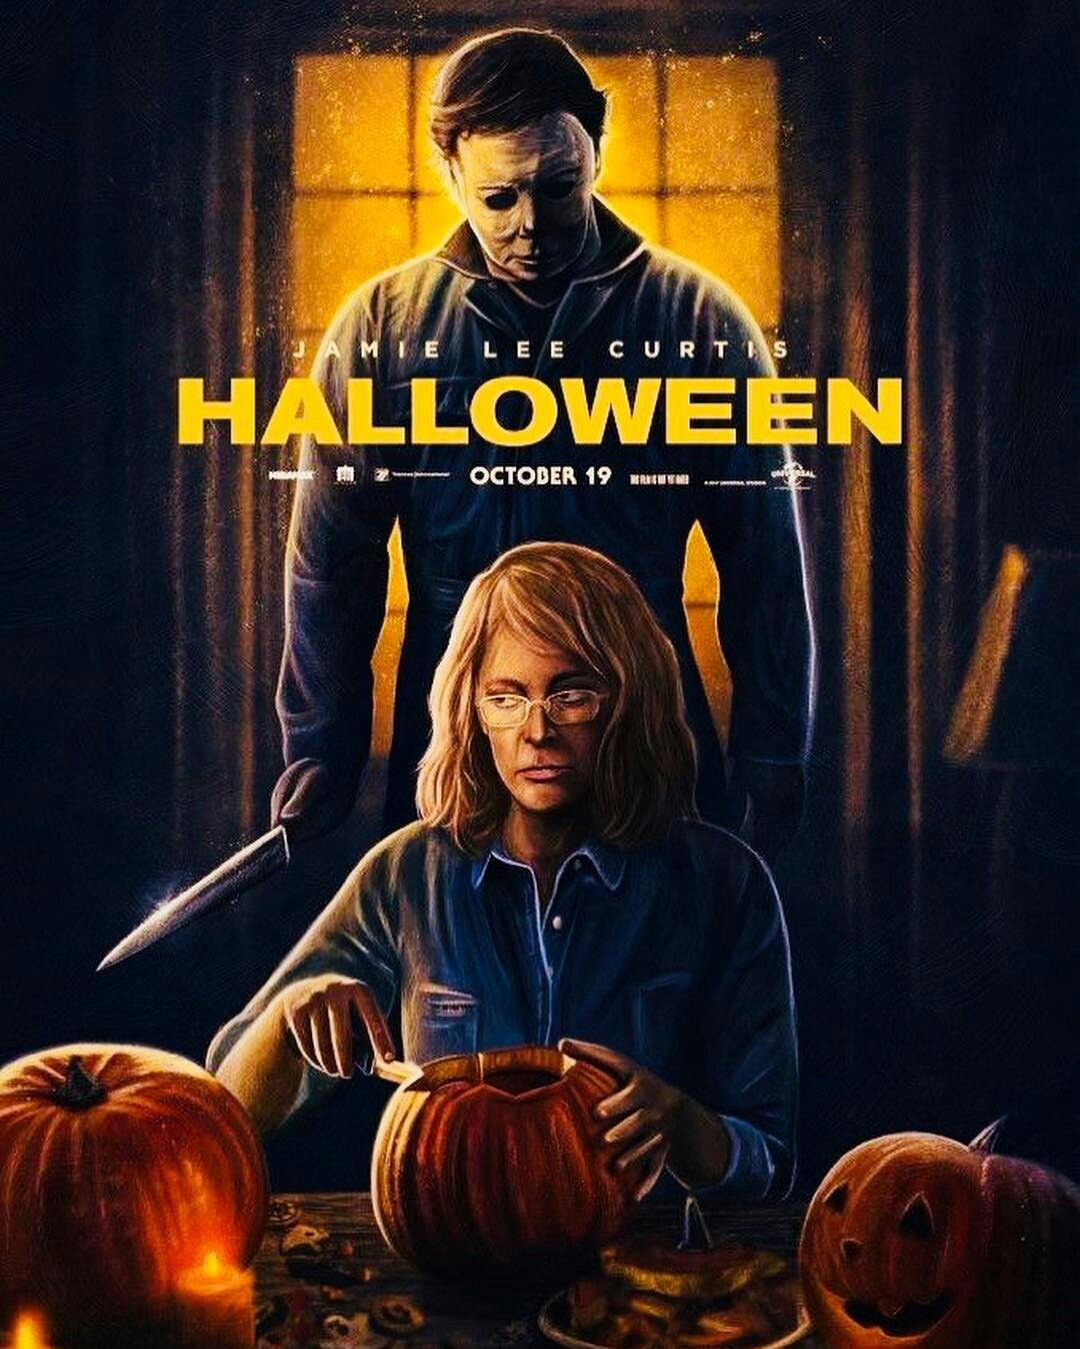 Pin by The Slasher on Michael myers in 2019 Halloween